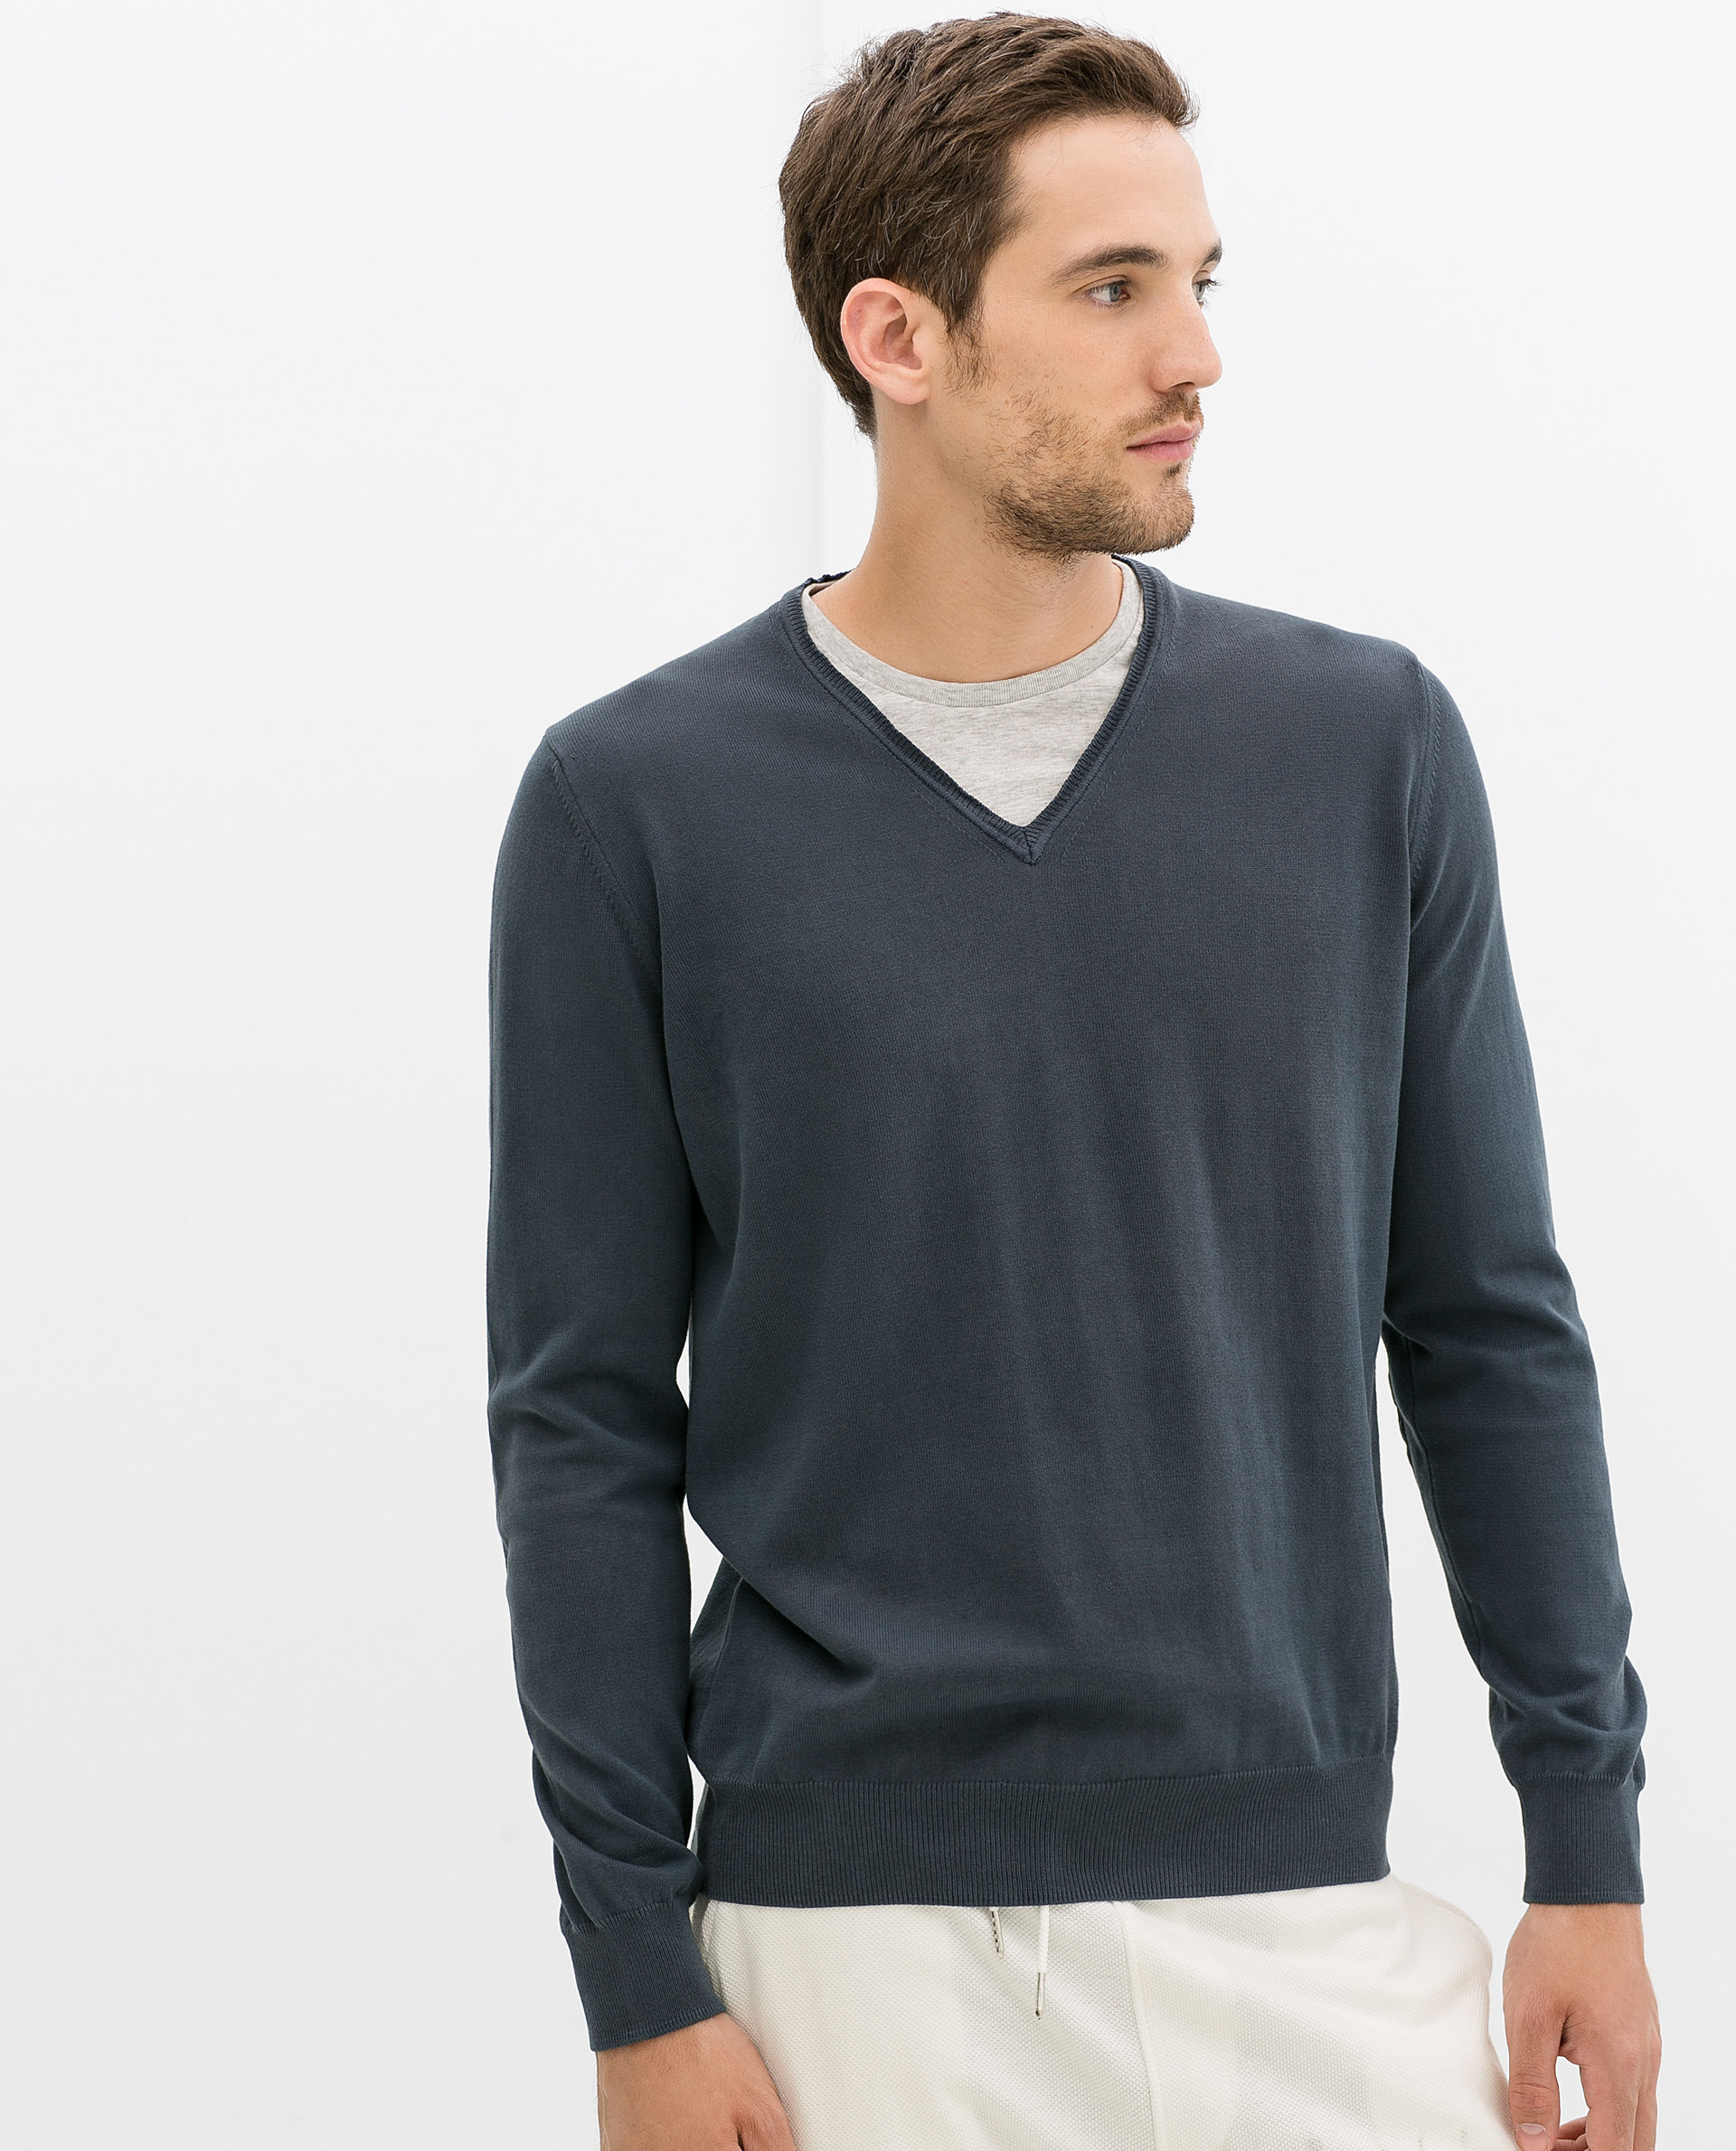 grey and white sweater baggage clothing